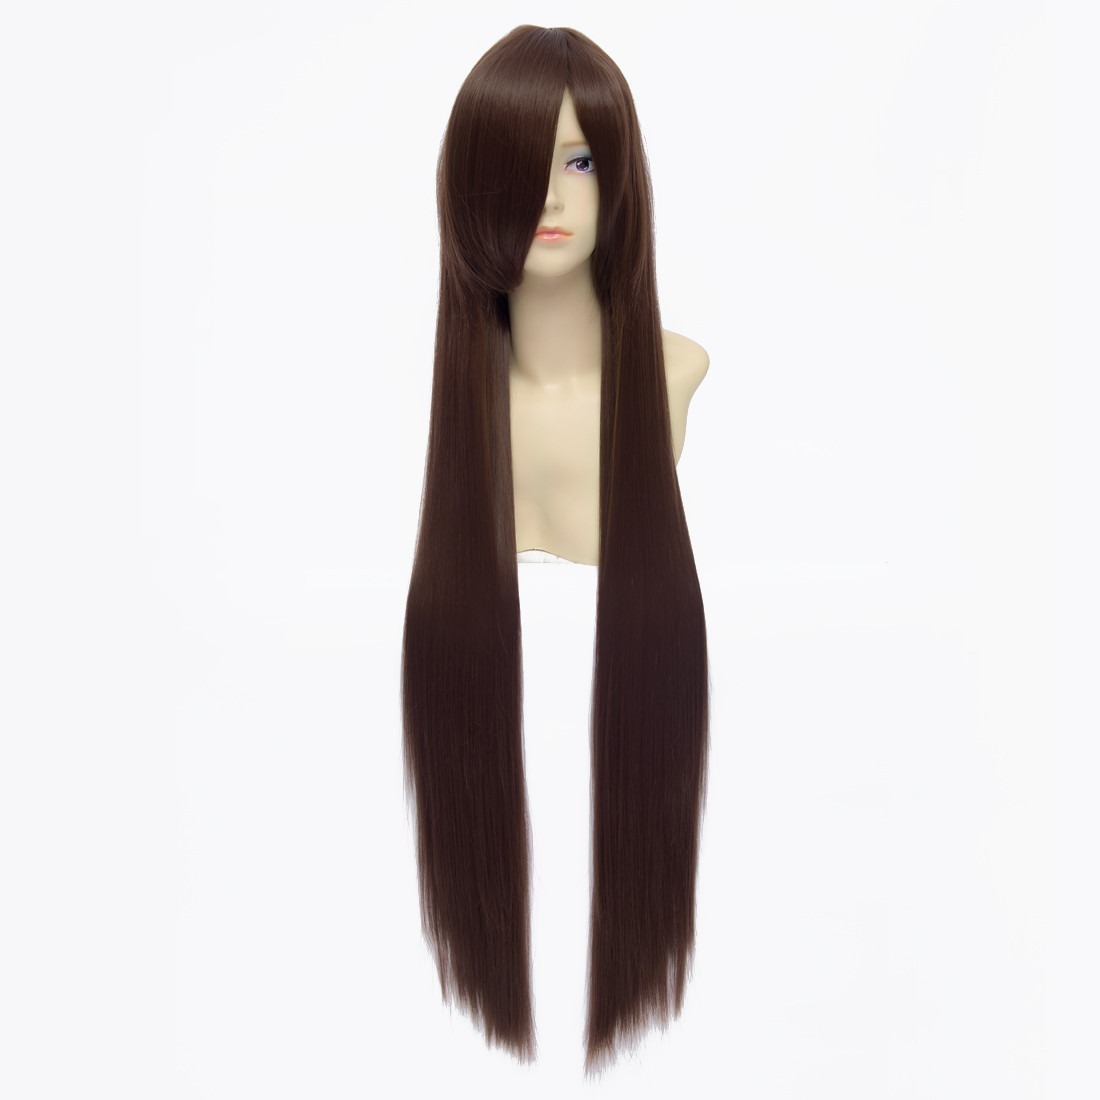 100cm Tea Brown Straight Long Synthetic Full Cosplay Costume Anime Wig